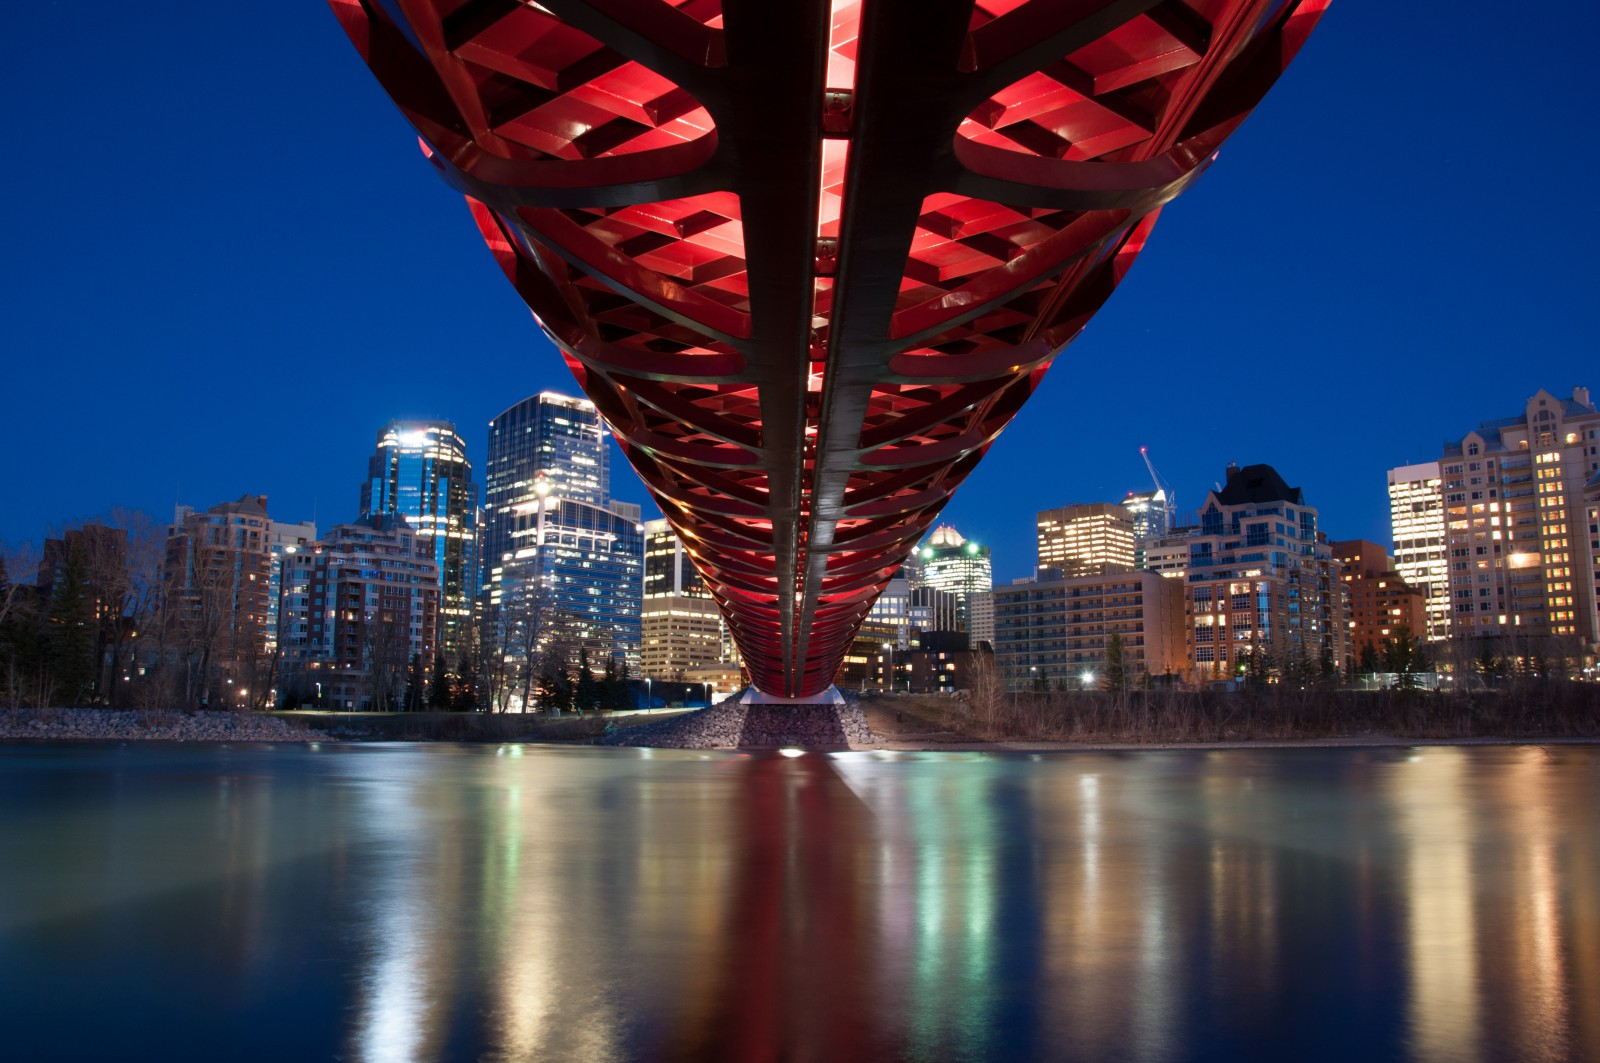 The Calgary Peace Bridge is one of many unique filming locations in Calgary, Alberta.